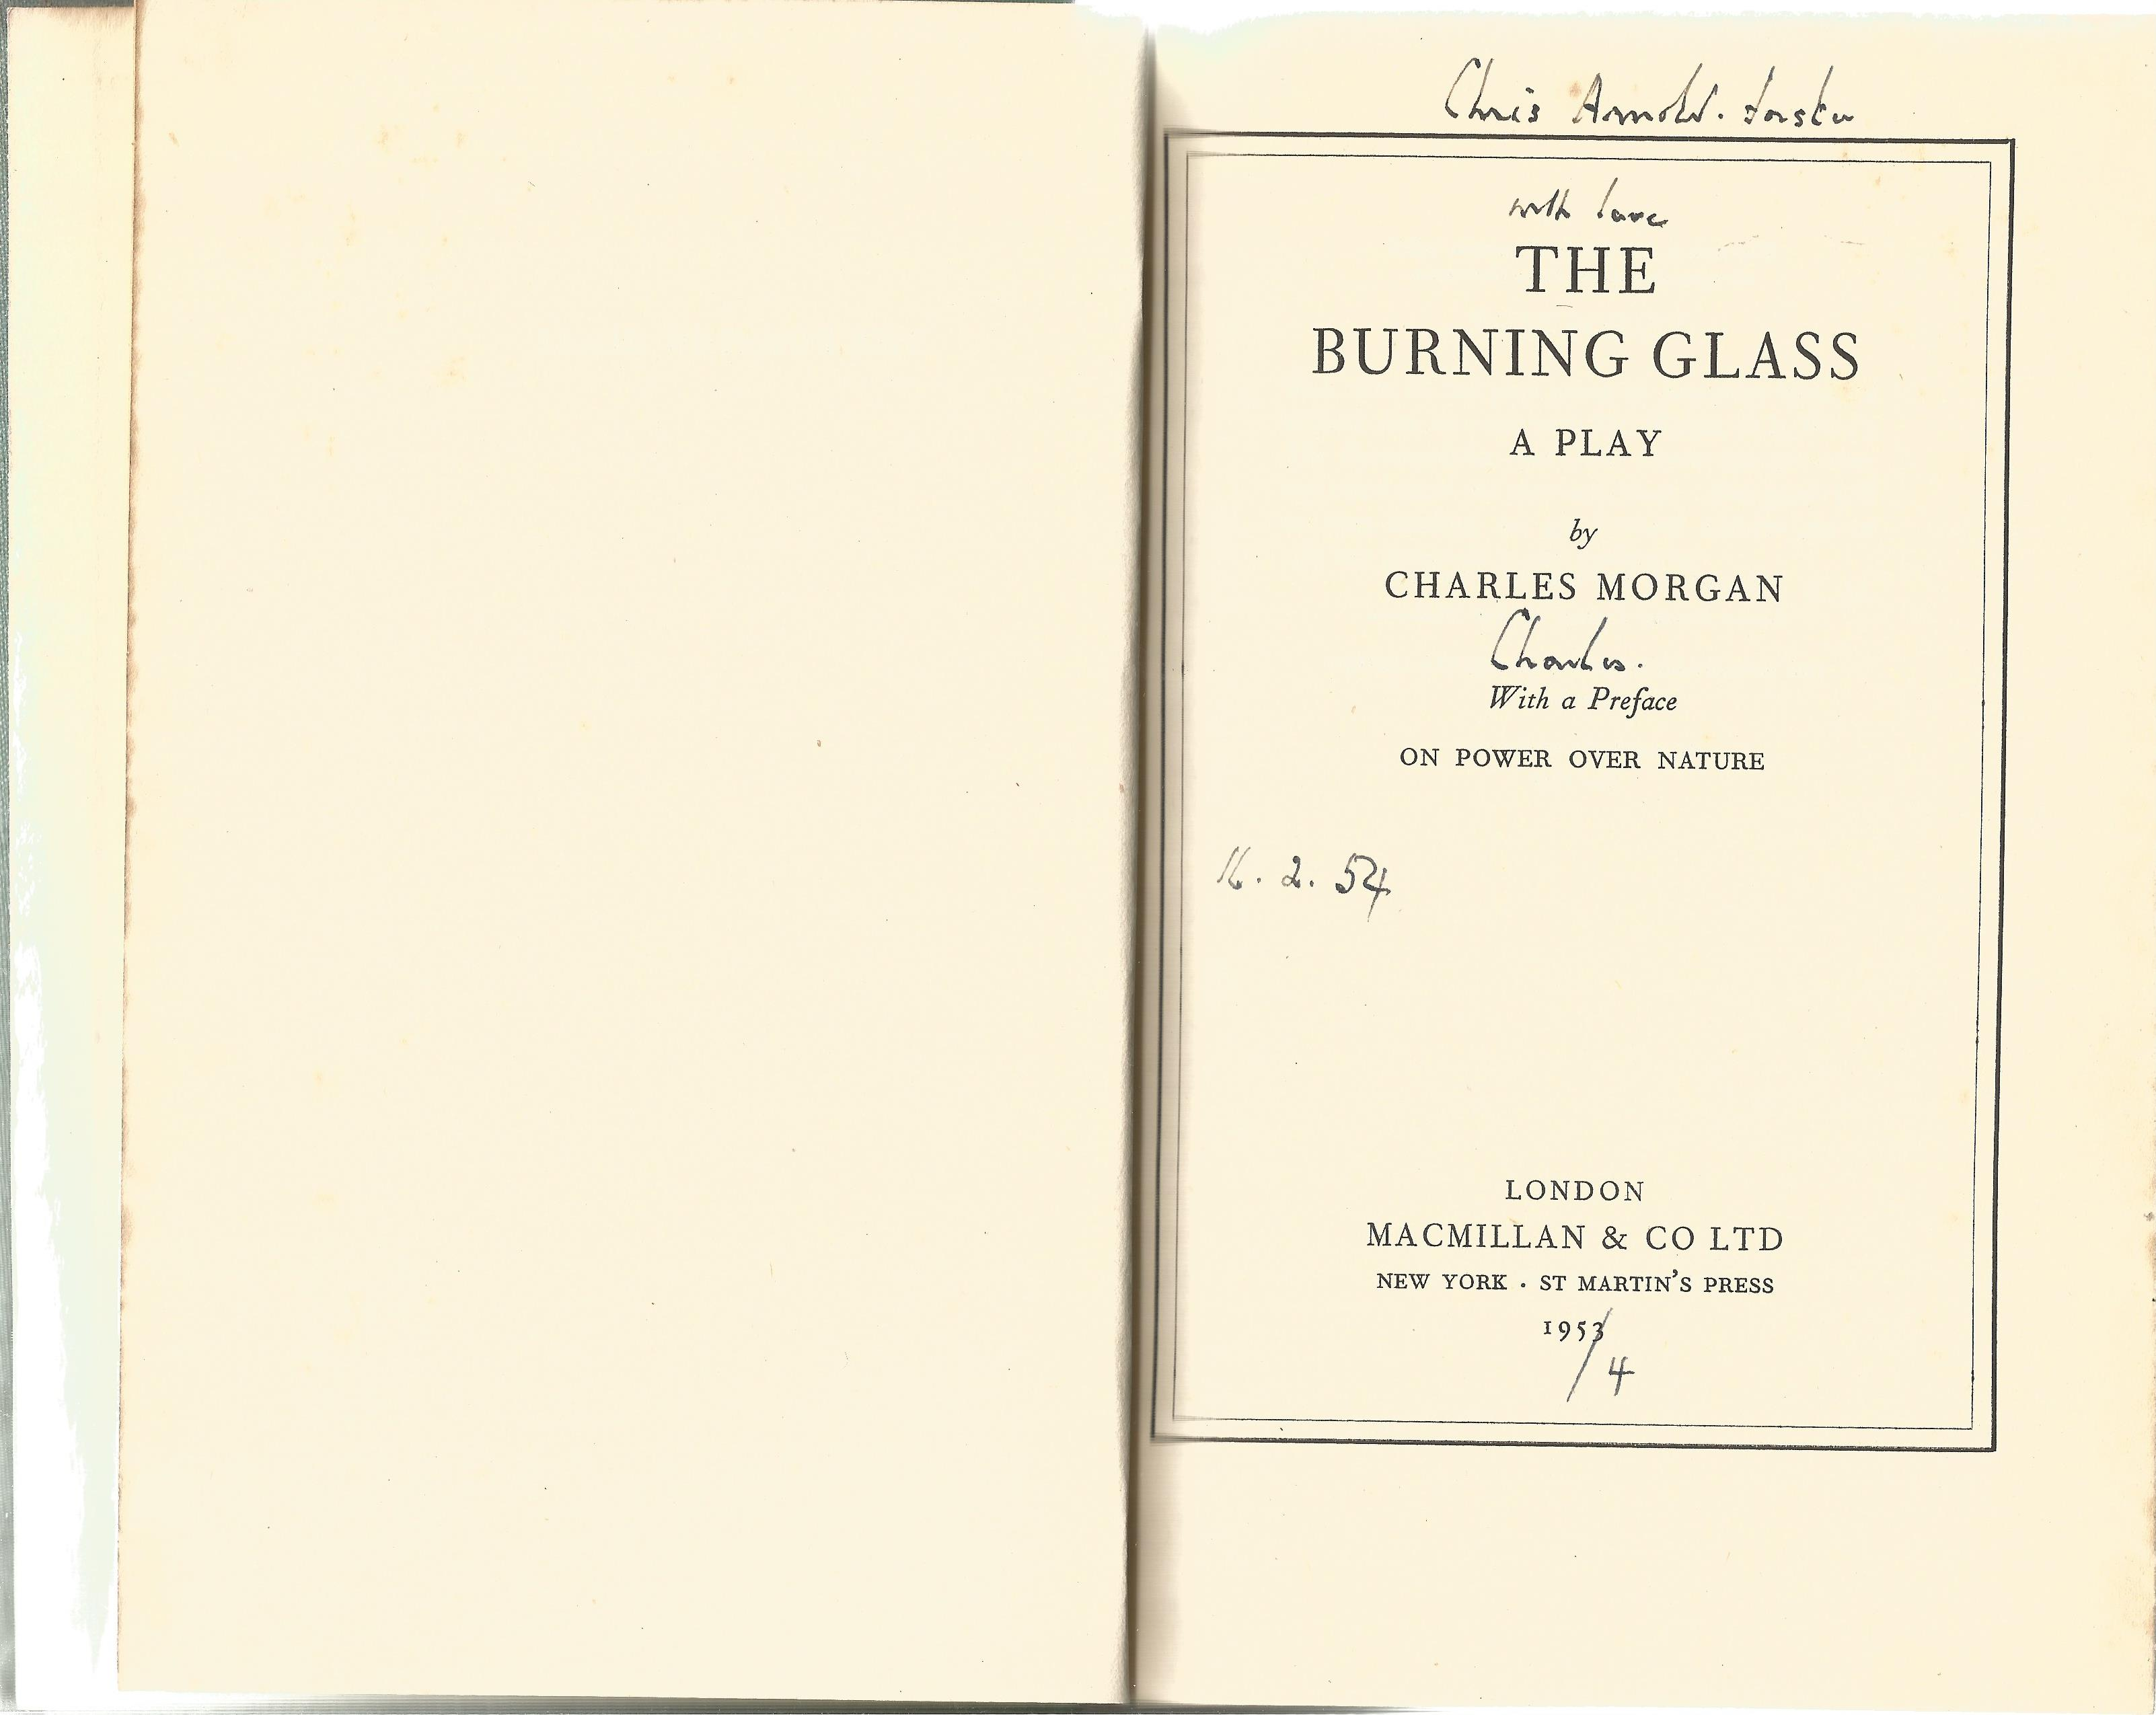 Charles Morgan Hardback Book The Burning Glass signed by the Author on the Title Page and dated 16th - Image 2 of 2